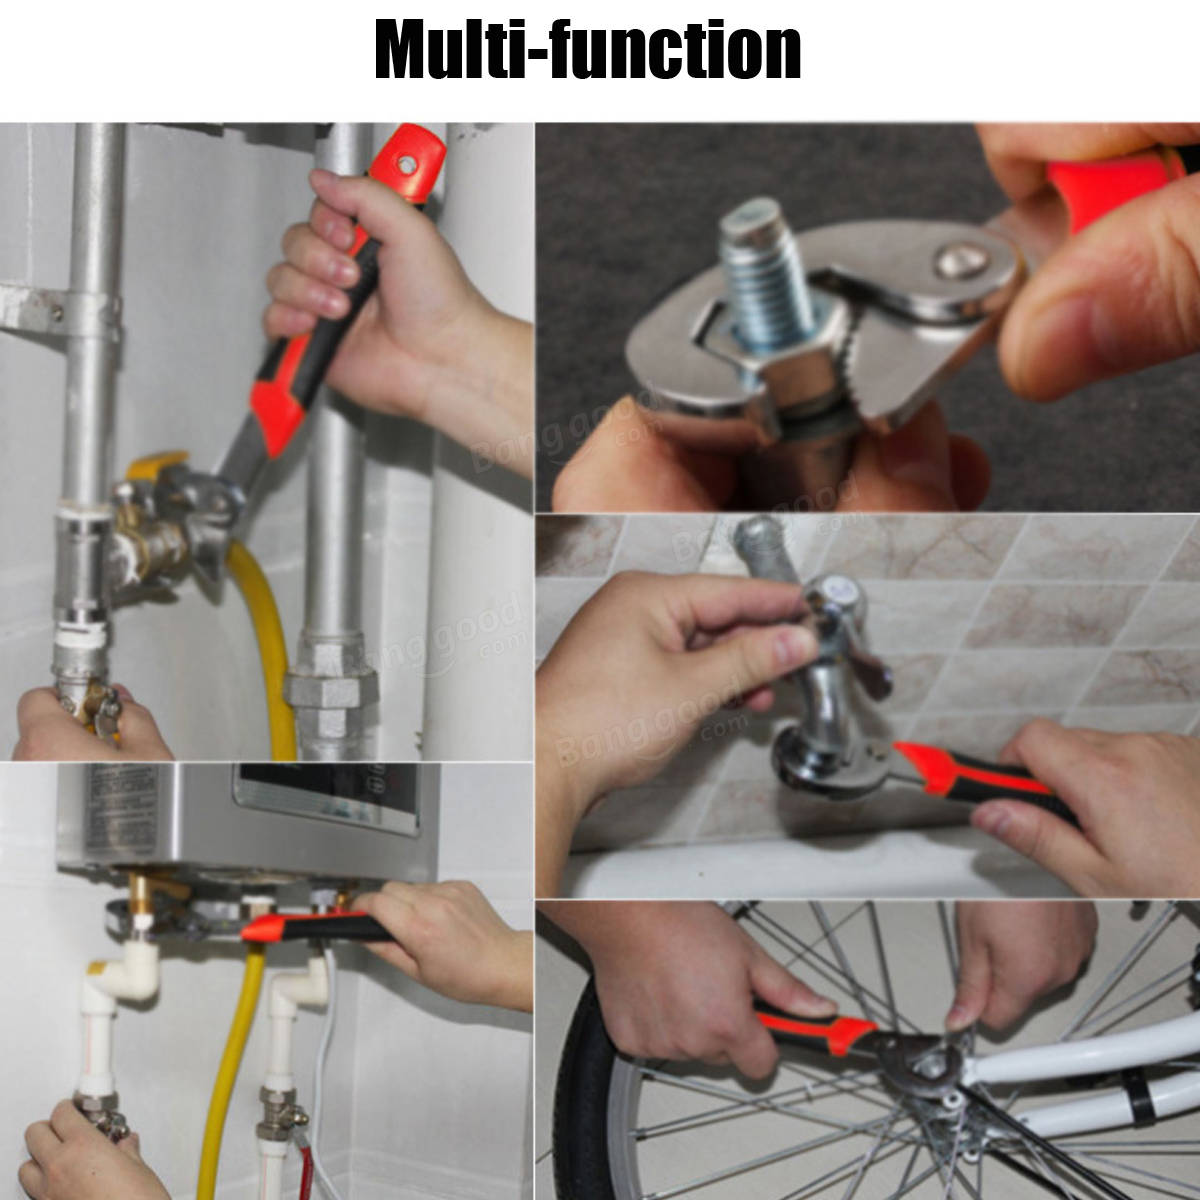 2Pcs 9-32mm Hook Shape Adjustable Pipe Wrench Steel Spanner Multi-function Tool